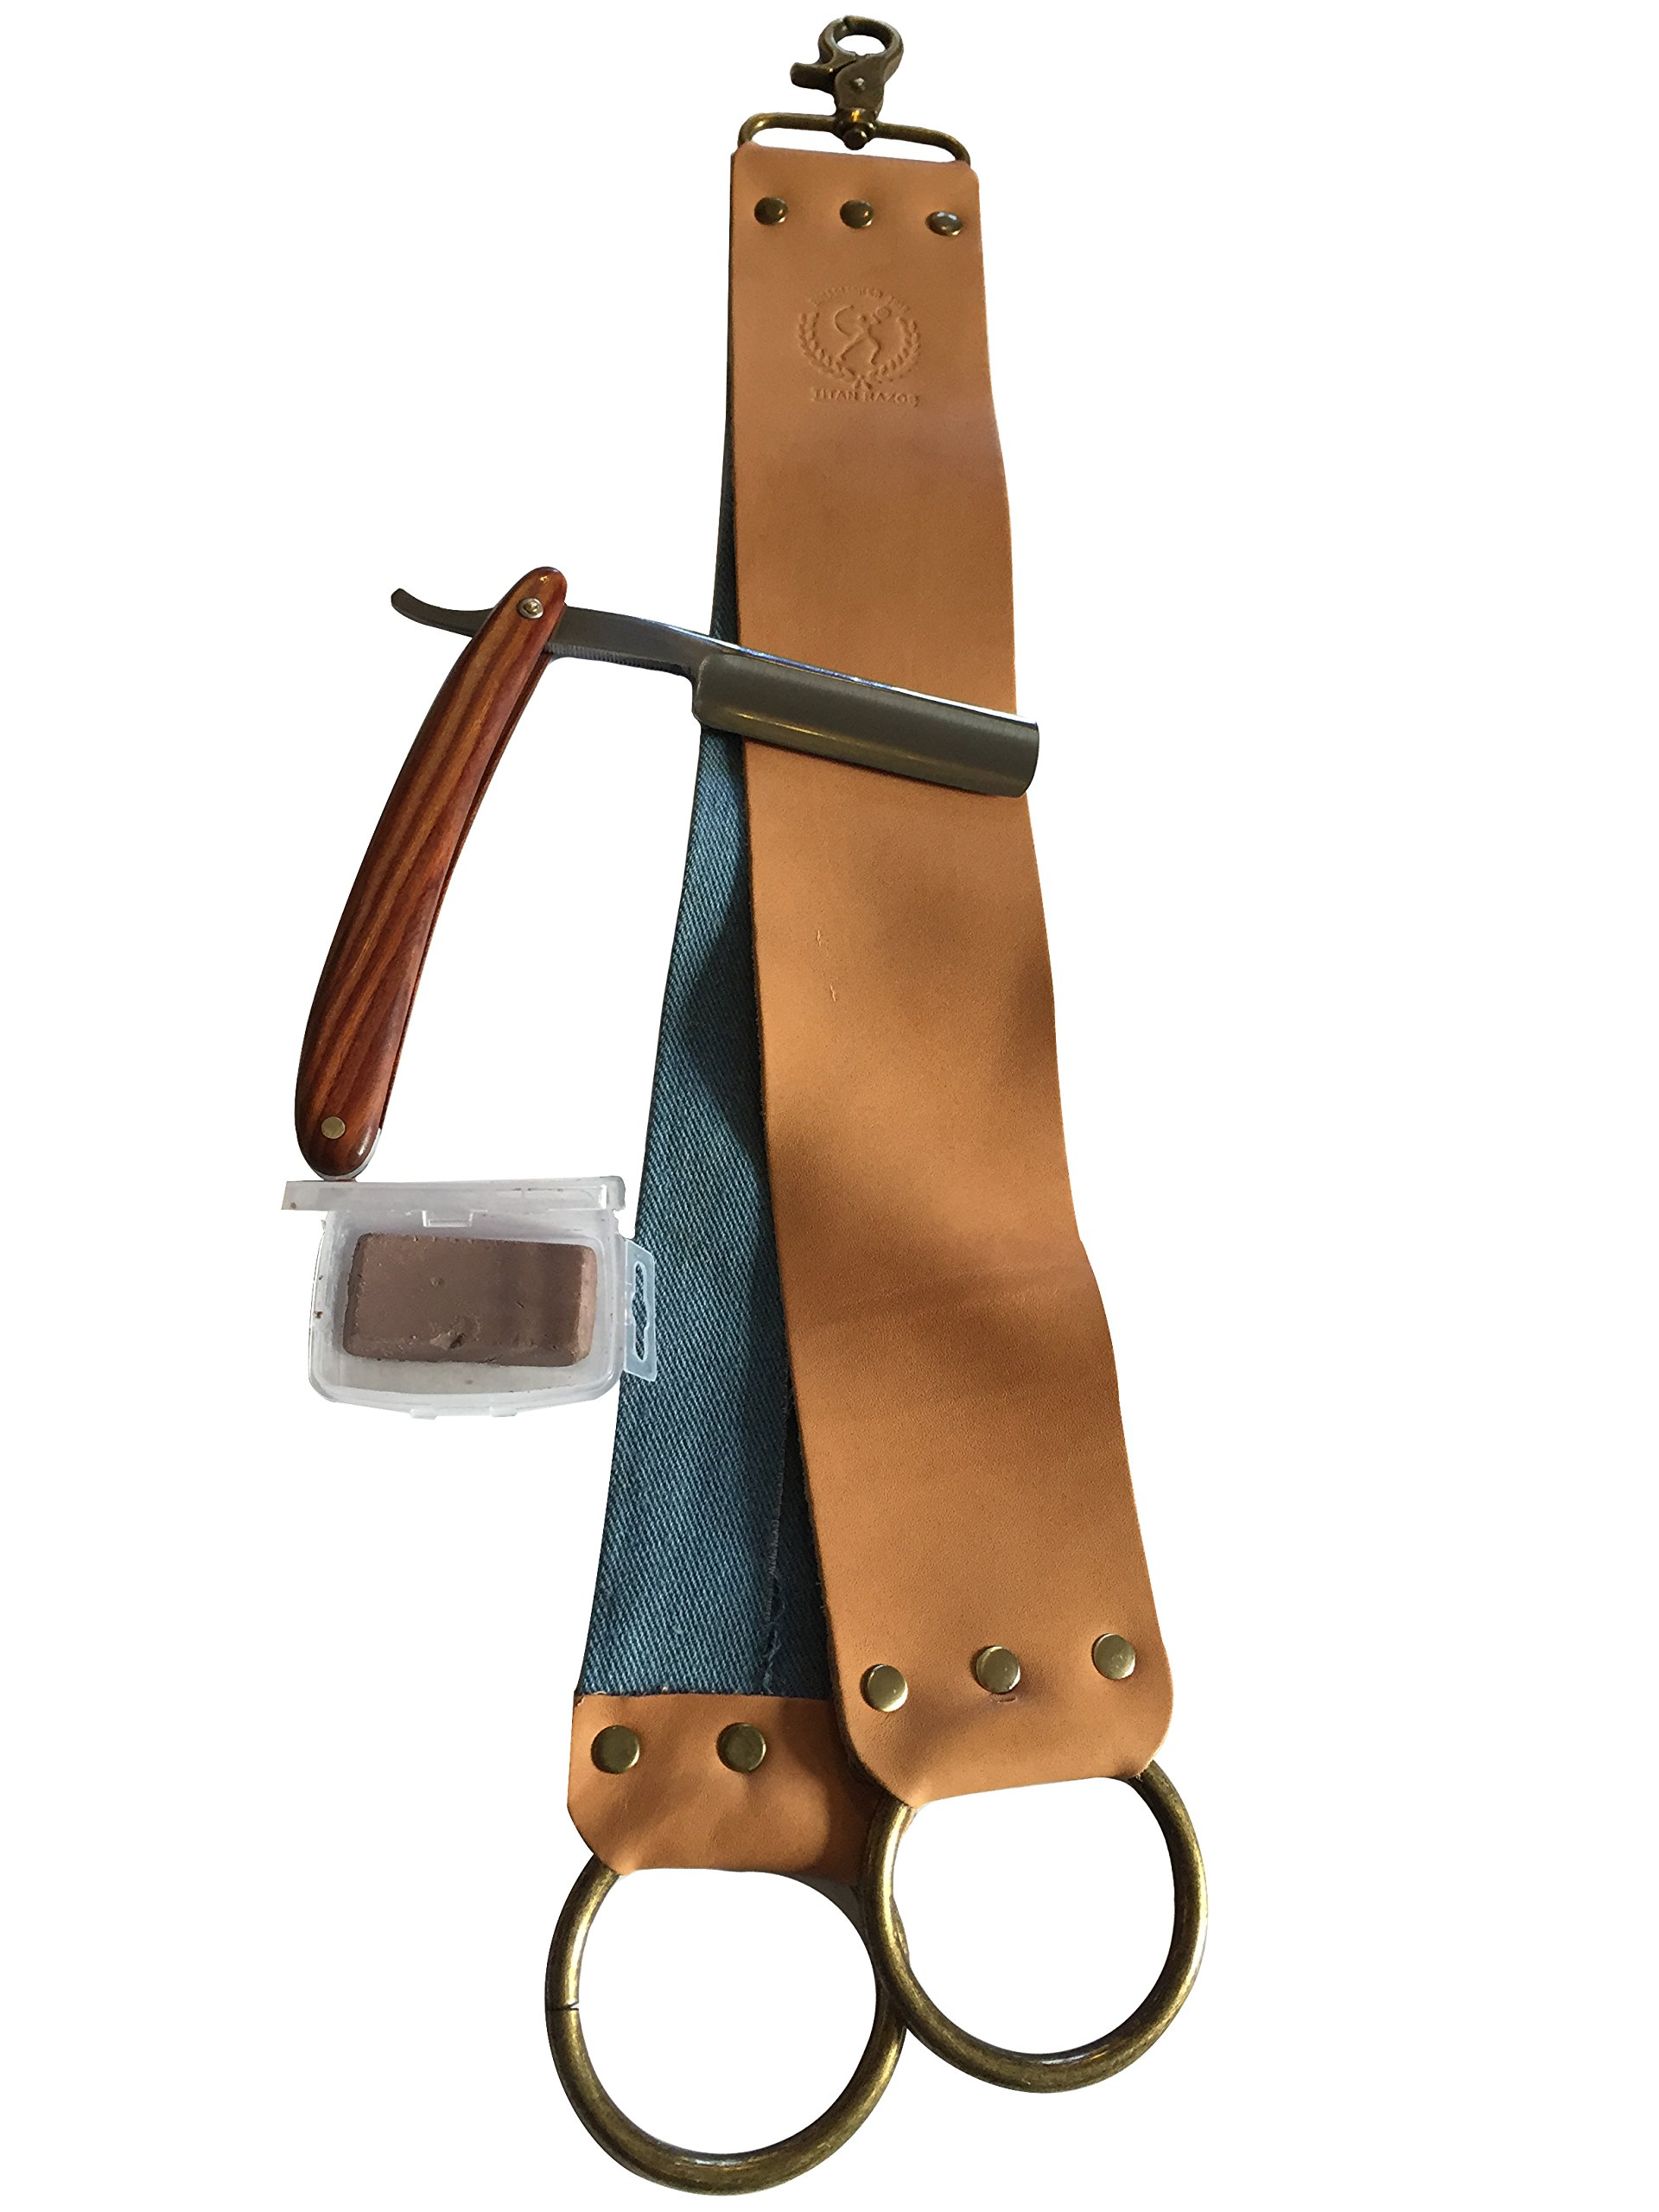 Straight Razor with Mahogany Wood Handle by Sawtooth Shave Co., 7/8 Full Hollow Ground Blade Lasts for Generations, with Strop and Honing Compound